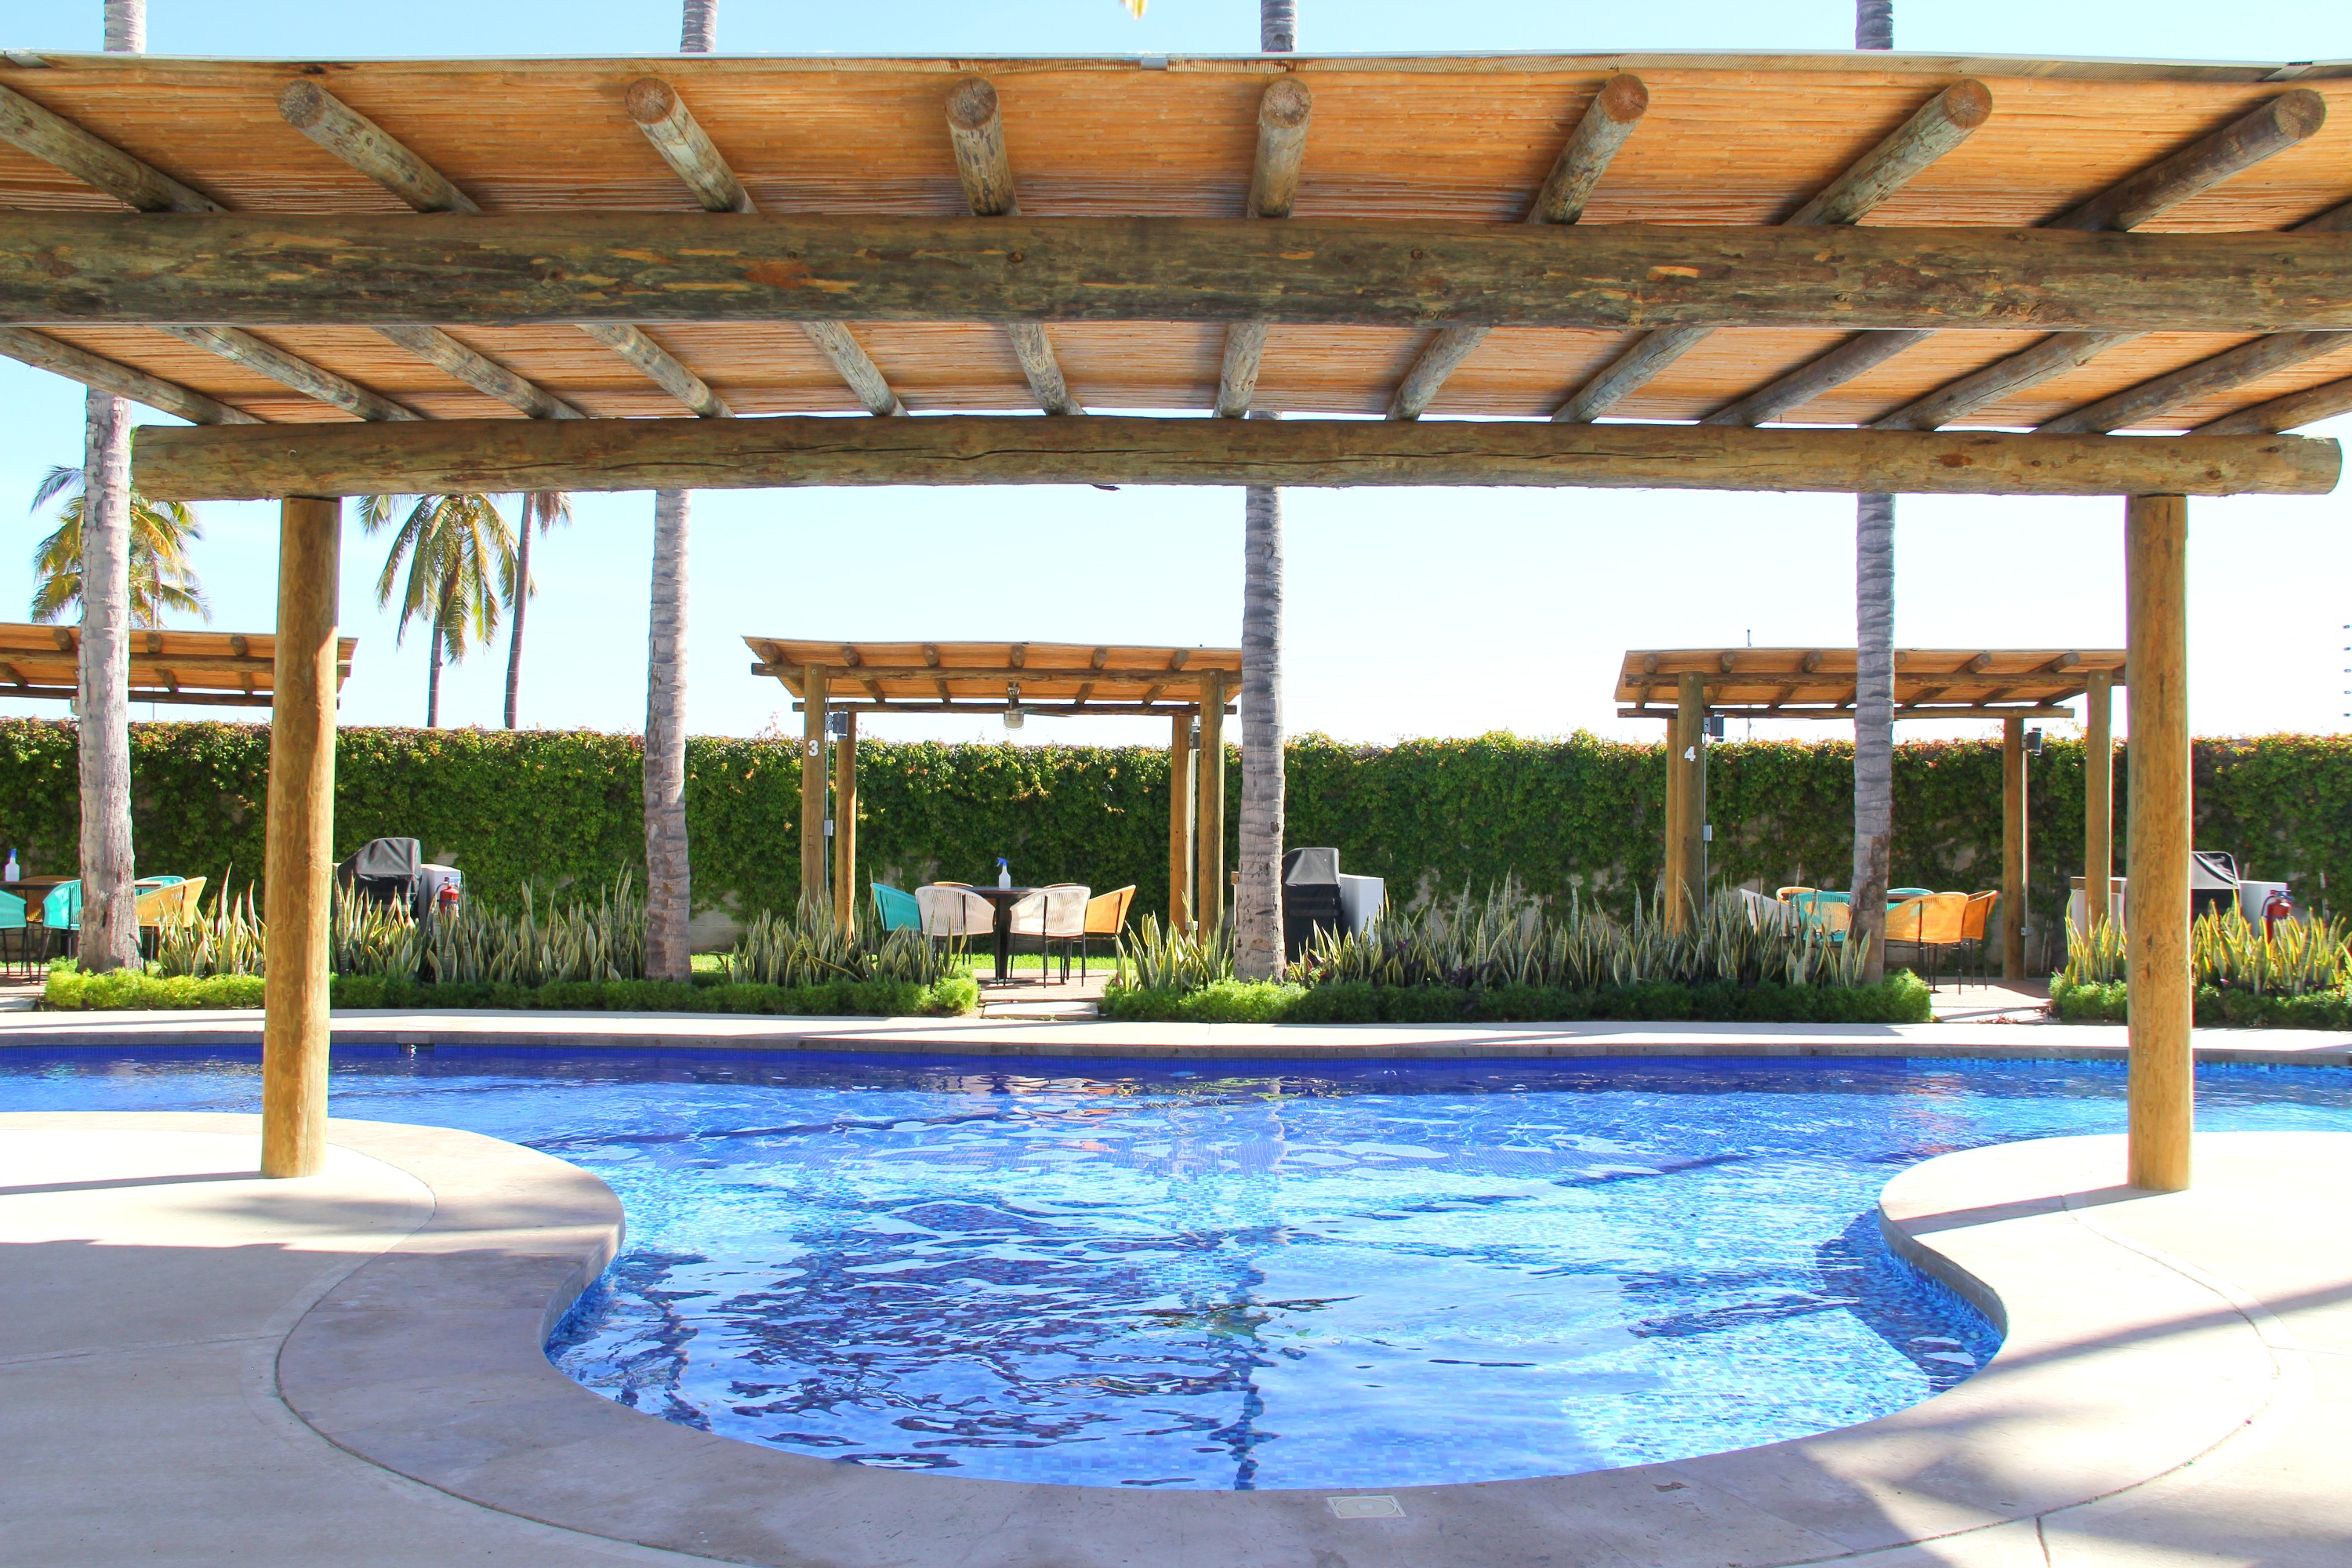 Pool with shaded area.